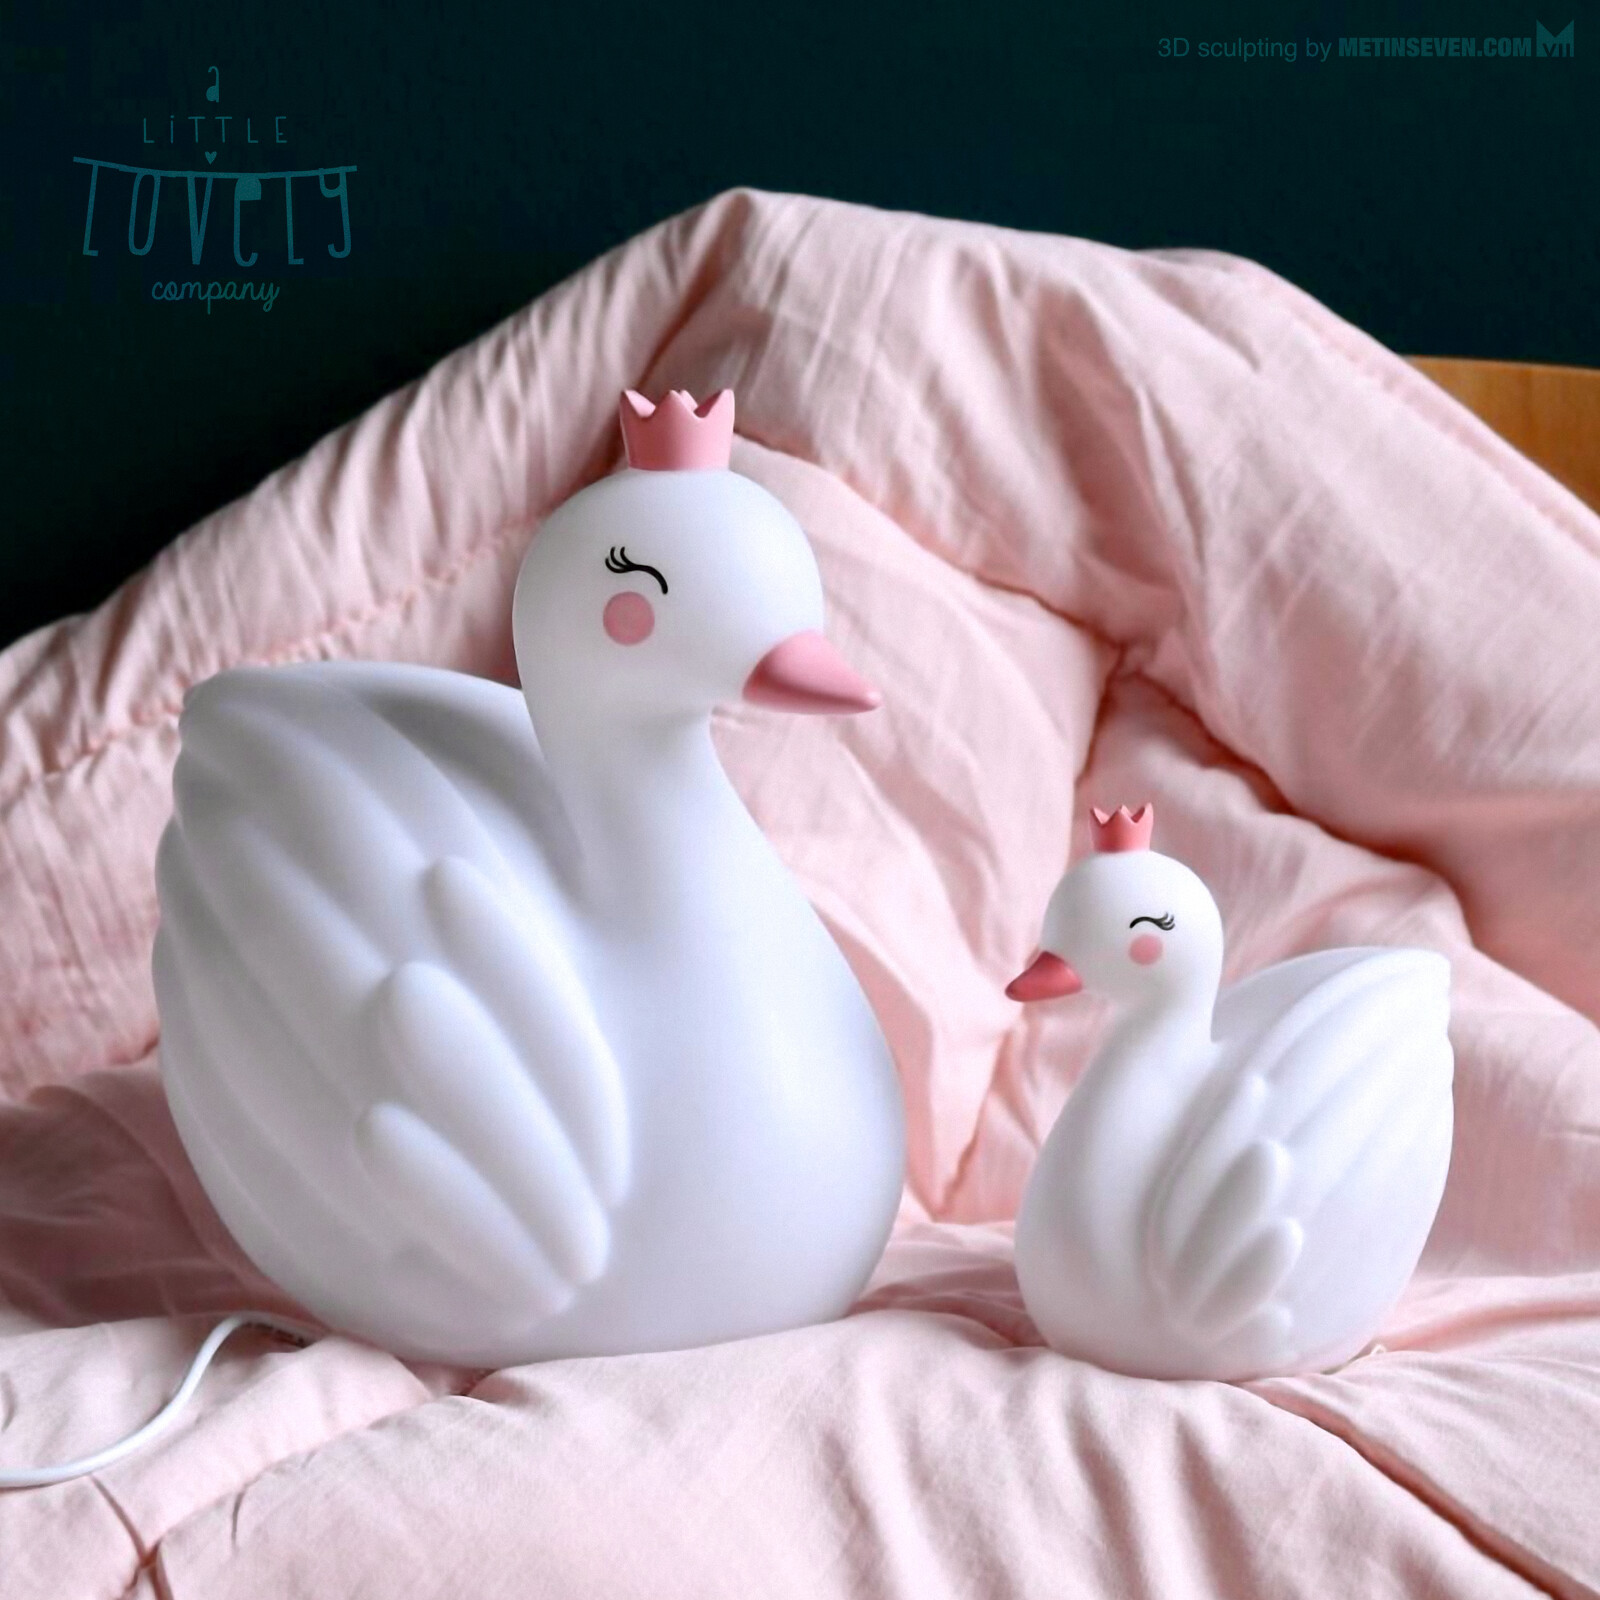 3D sculpting of swan lights for A Little Lovely Company